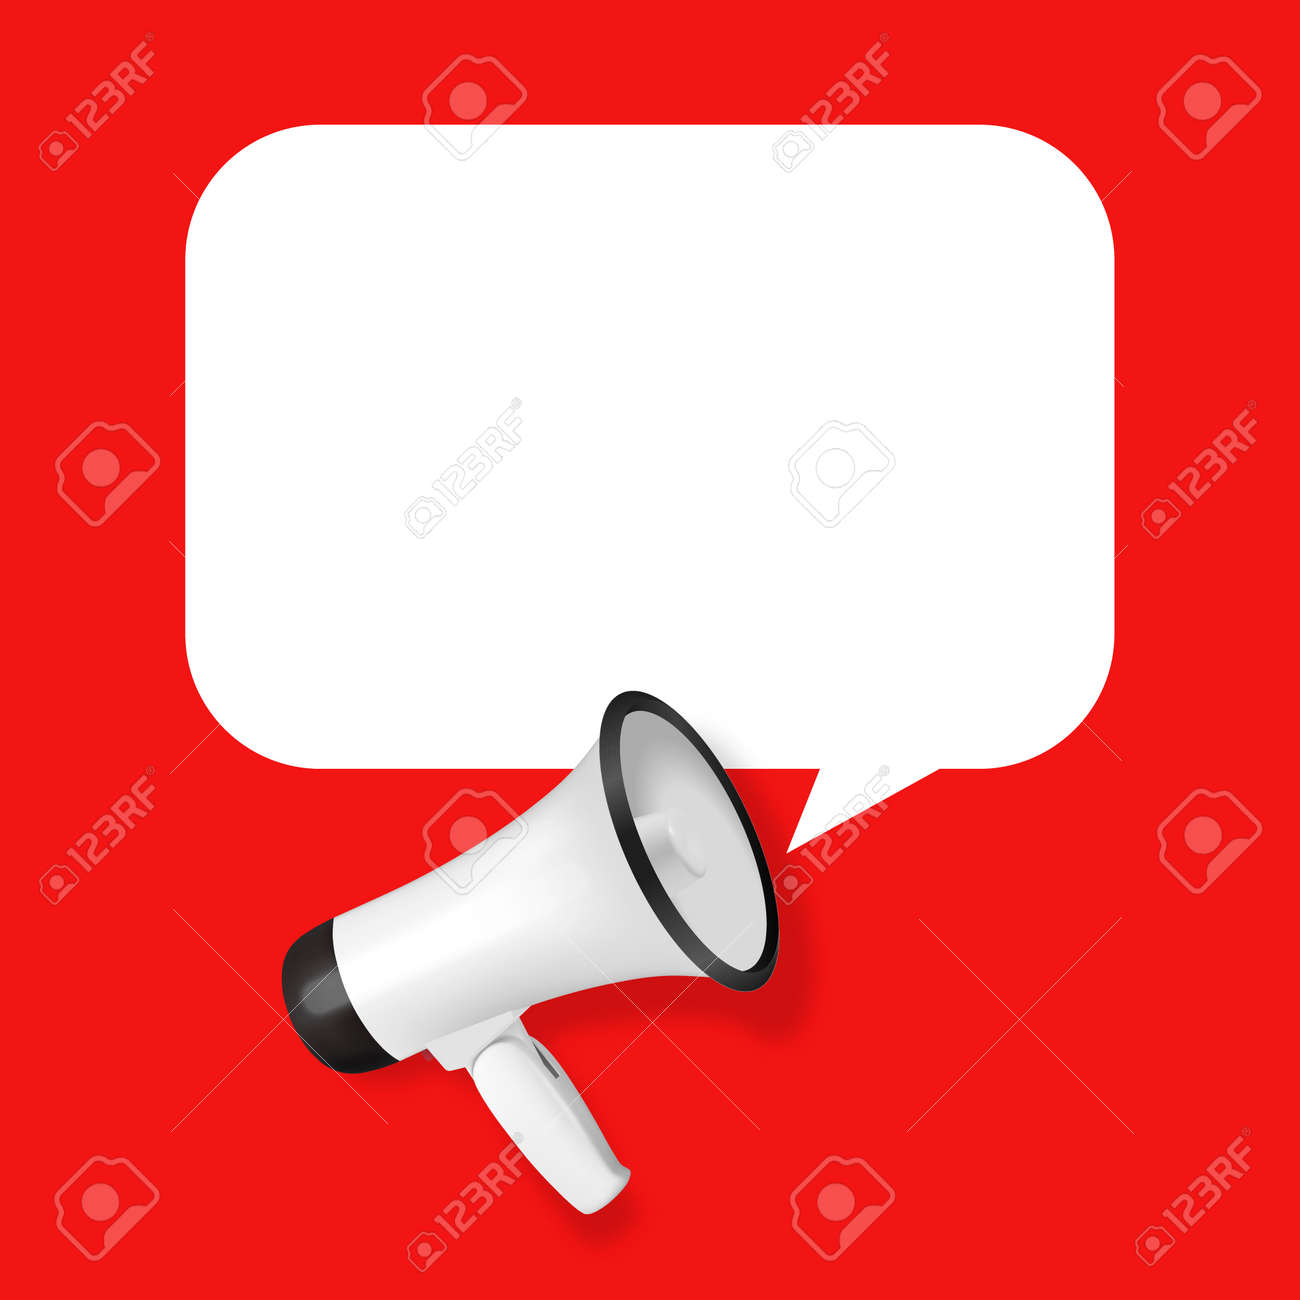 Vector Realistic 3d Simple White Megaphone with Speech Buble on Red Background. Design Template, Banner, Web. Speaker Sign. Announcement, Attention Concept - 173015408